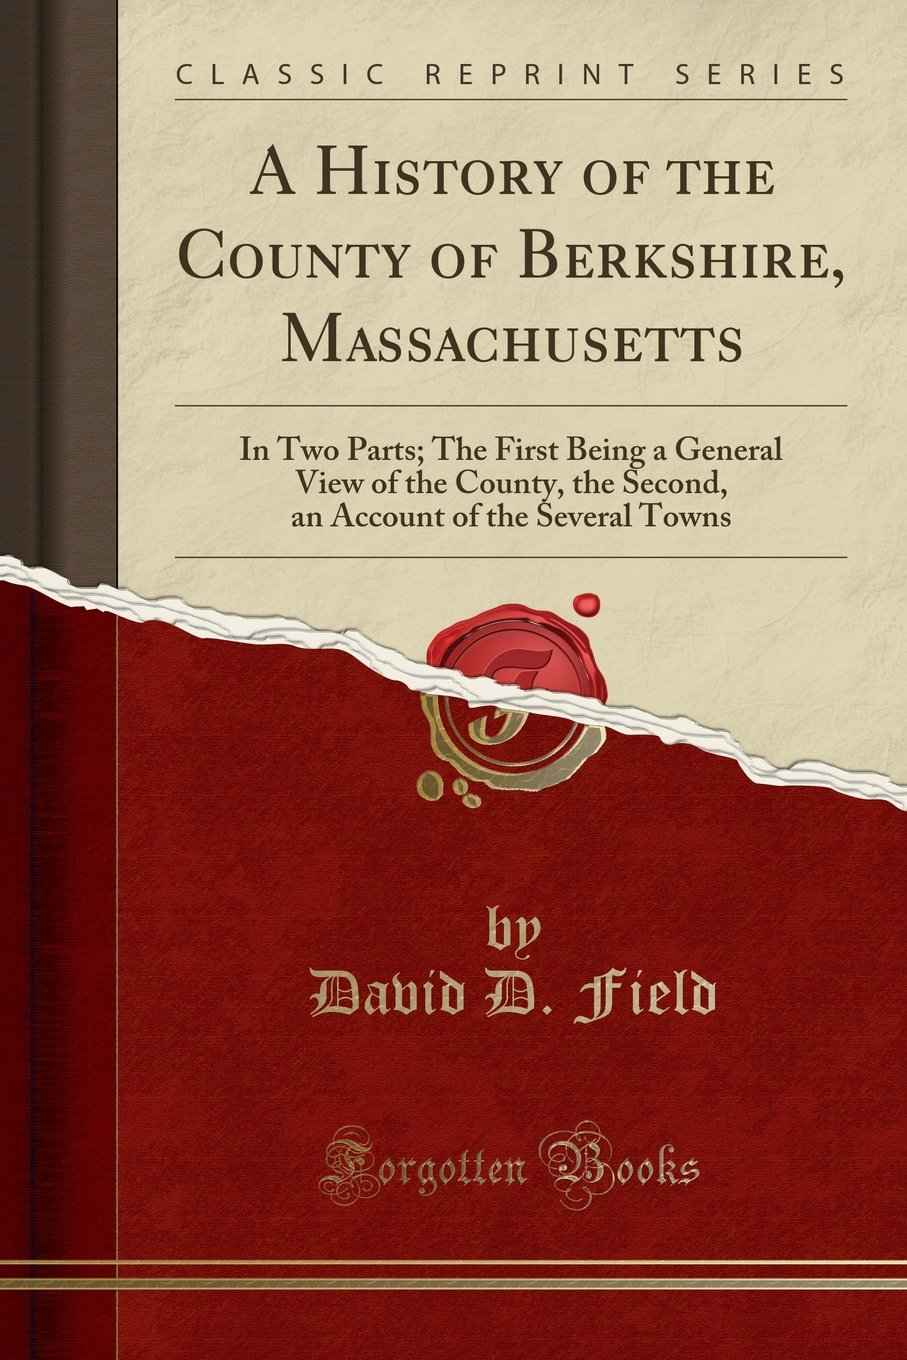 Download A History of the County of Berkshire, Massachusetts: In Two Parts; The First Being a General View of the County, the Second, an Account of the Several Towns (Classic Reprint) ebook